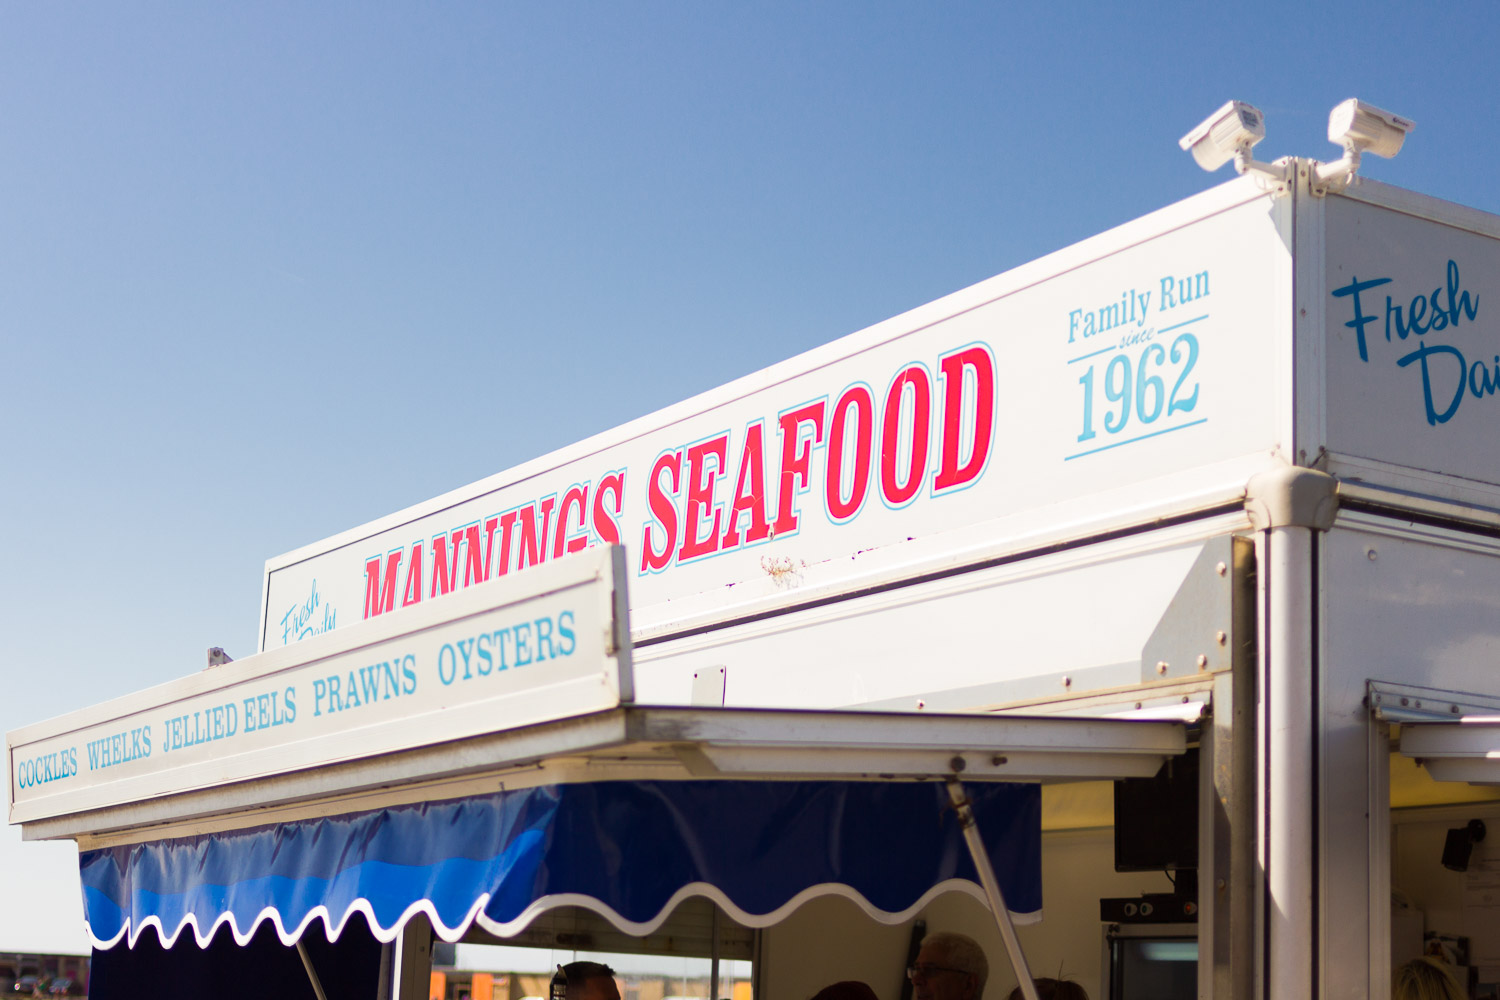 margate seafood stand blue sky seaside town